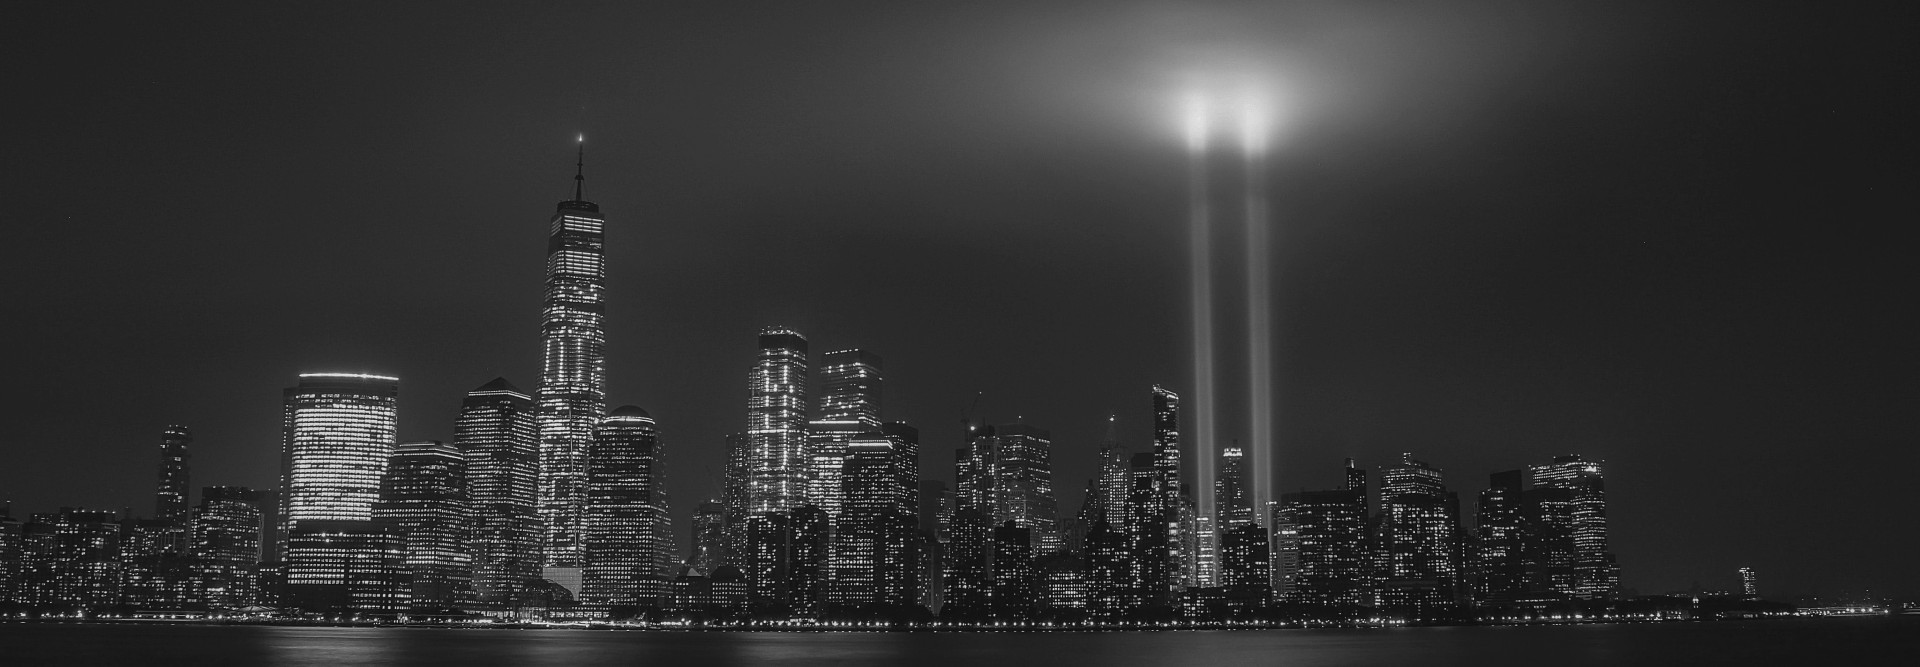 The Tribute in Light over the location of the Twin Trade Towers in NY